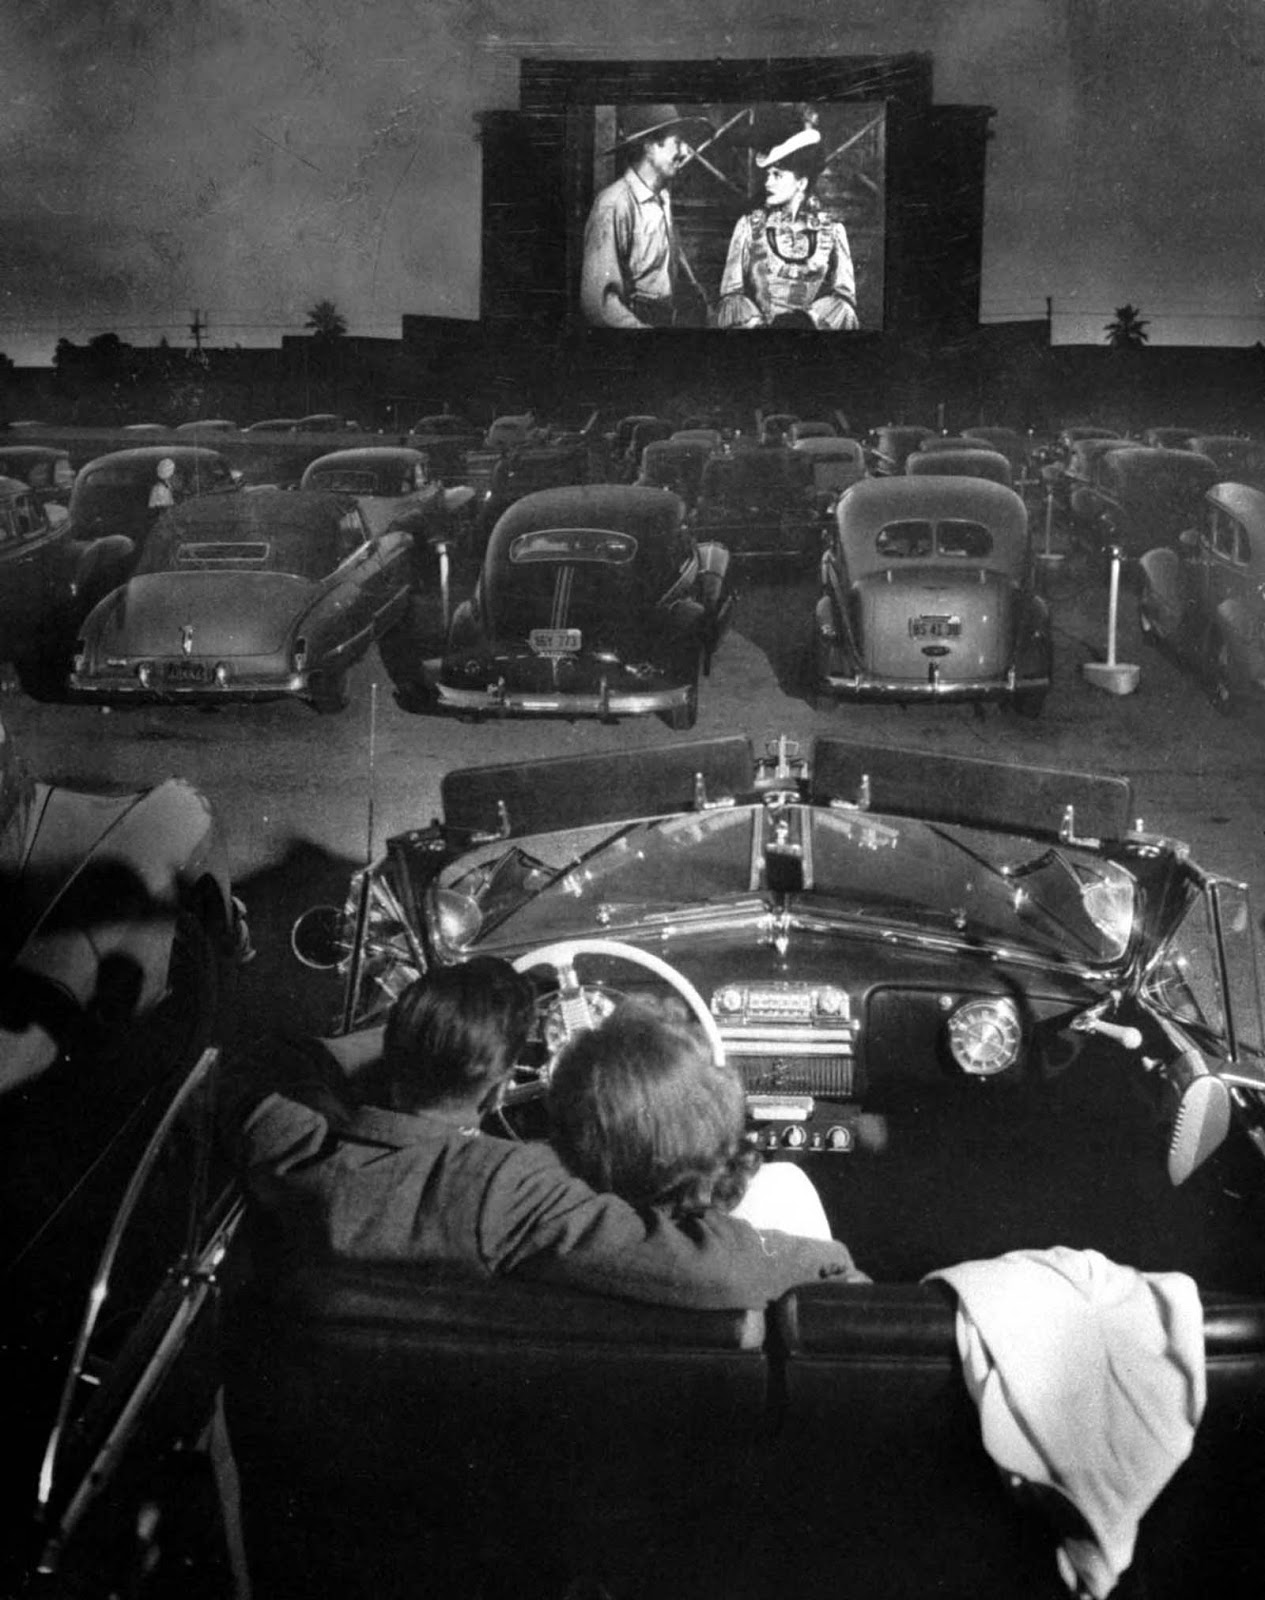 Rear view of young couple snuggling behind the wheel of his convertible as they watch large screen action behind rows of cars at a drive-in movie theater.